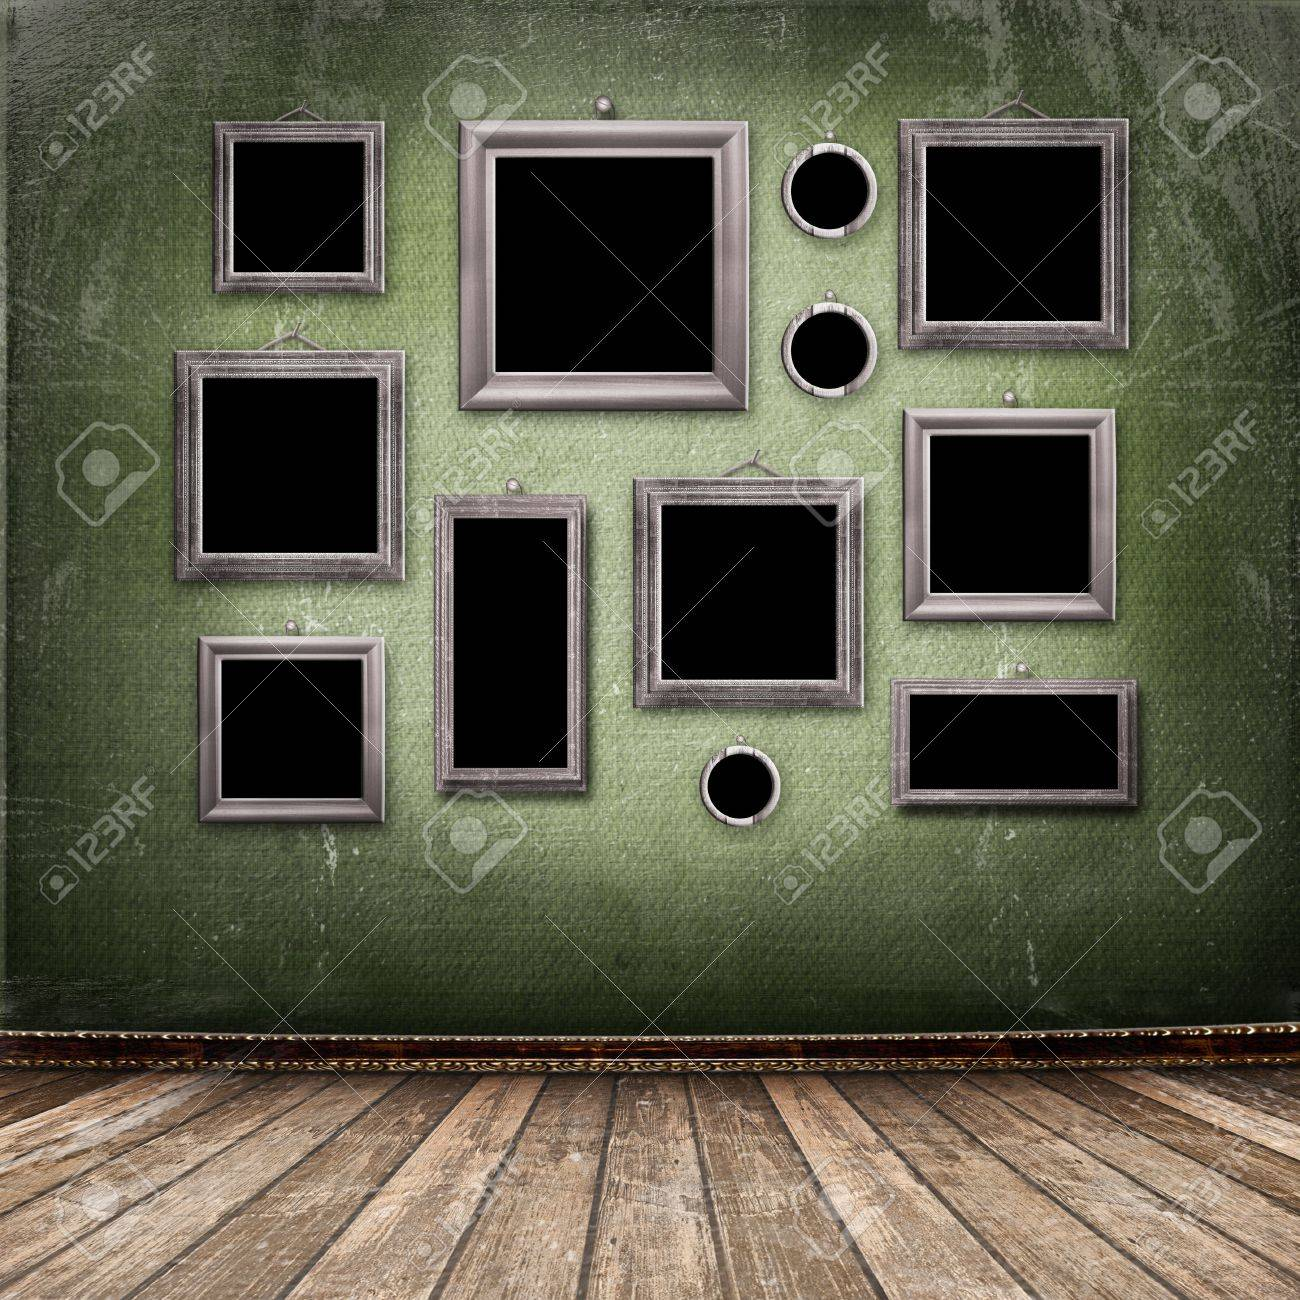 Old room, grunge industrial interior, worn  surface, wooden frames Stock Photo - 6065908